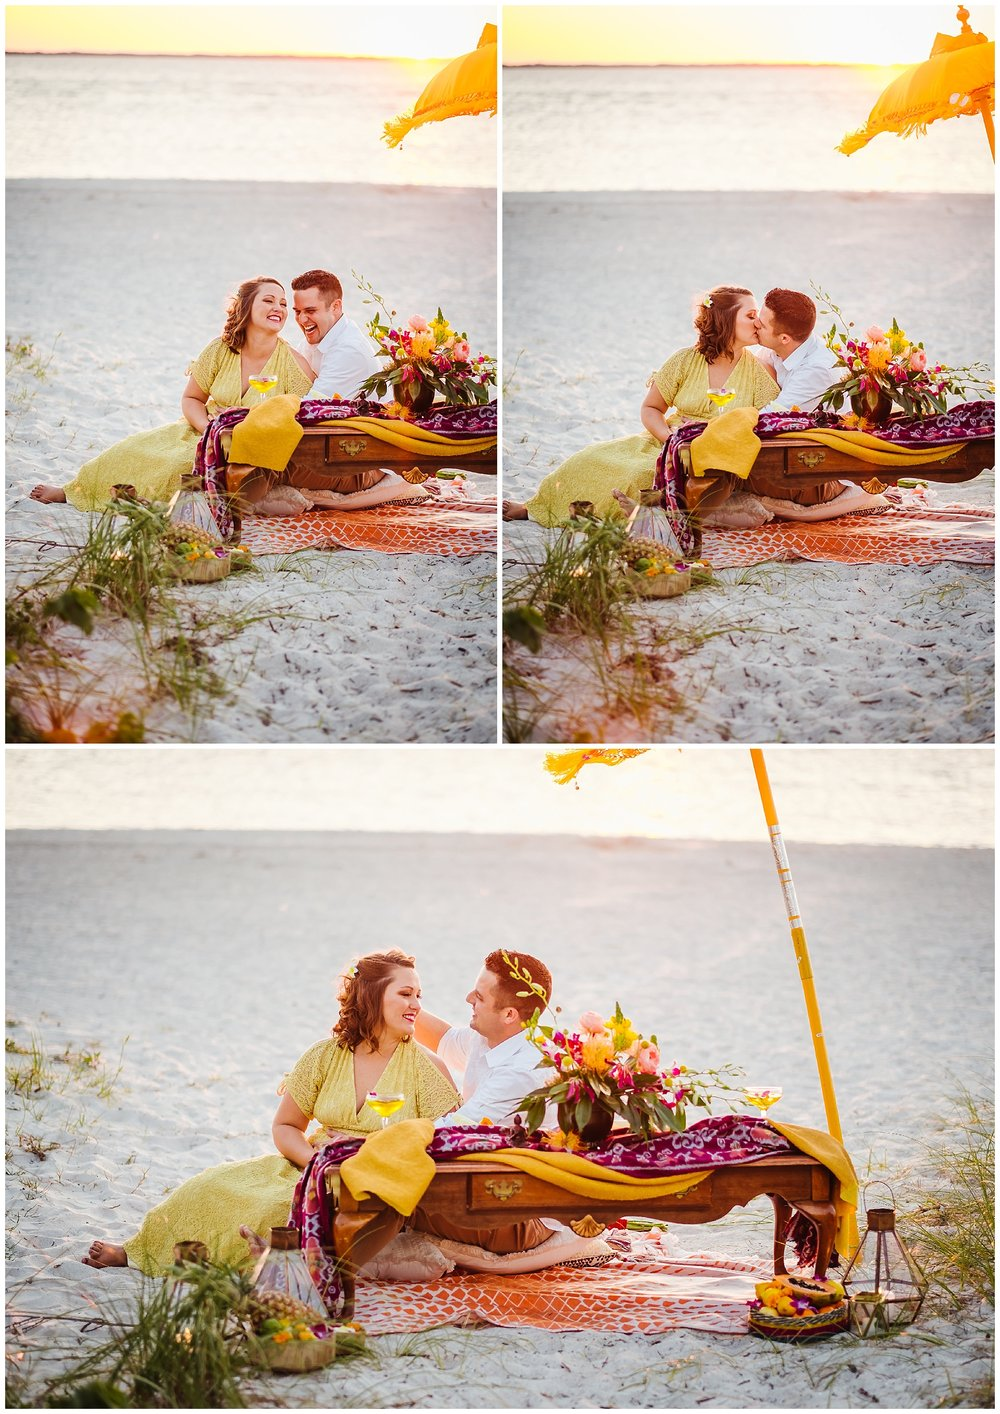 daly-digs-bali-anniversary-styled-shoot11.jpg